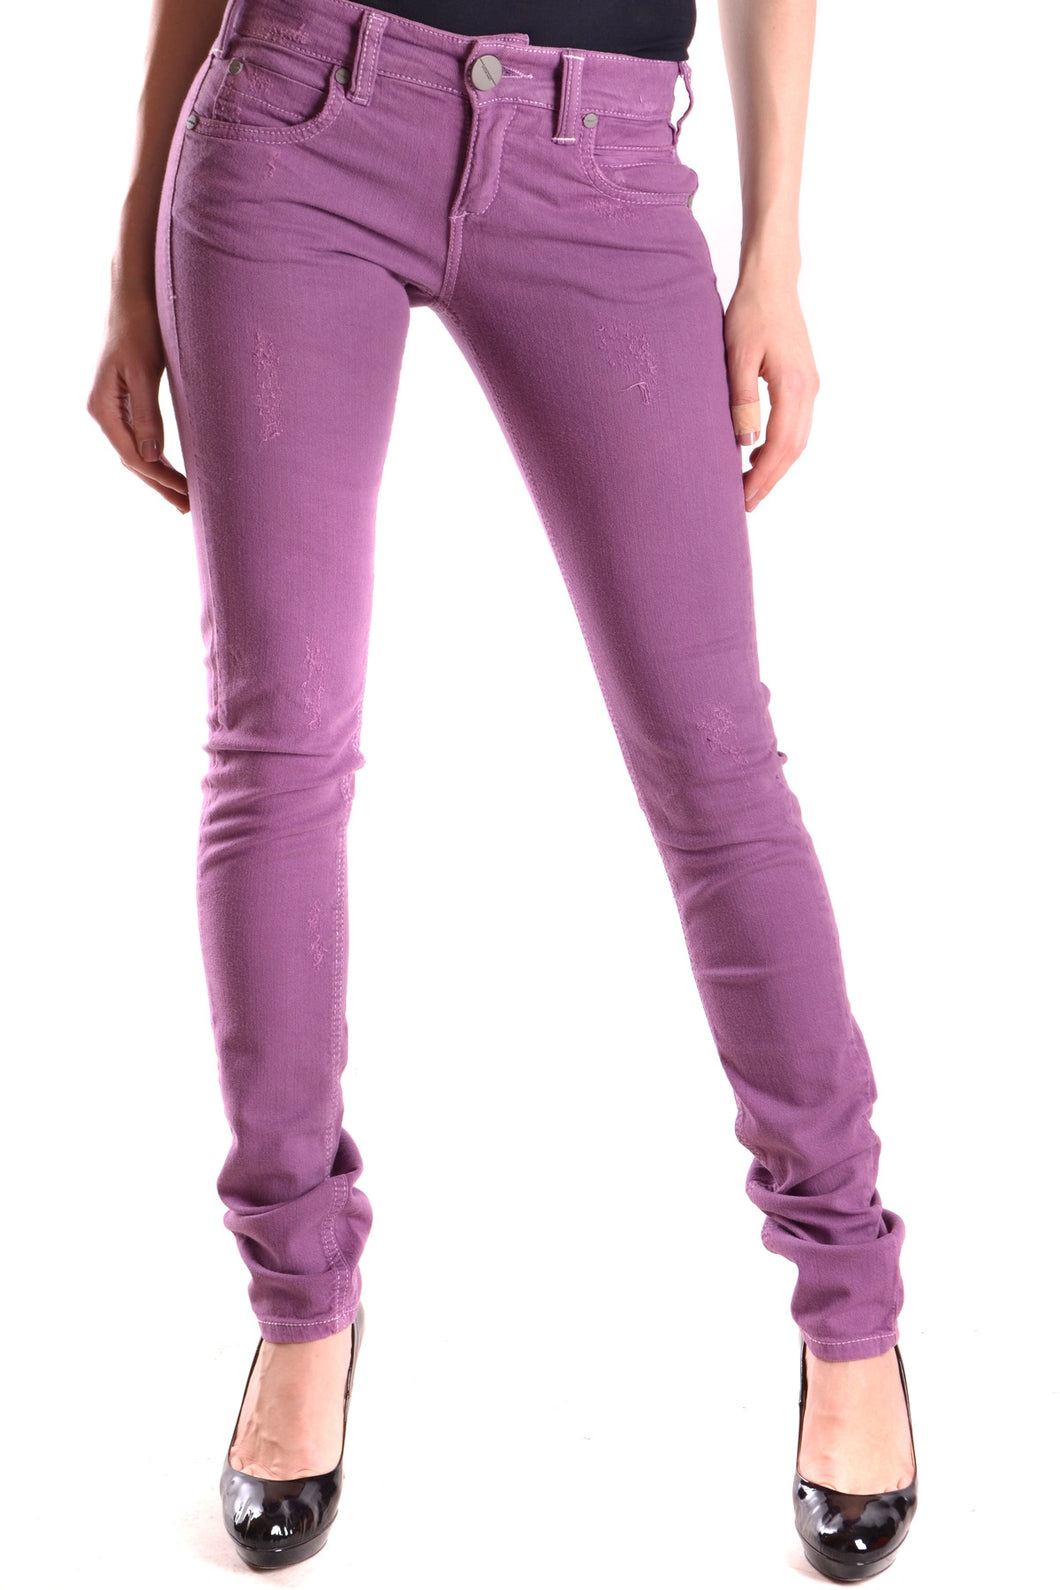 New Pinko Violet Straight Leg Jeans, Size 25